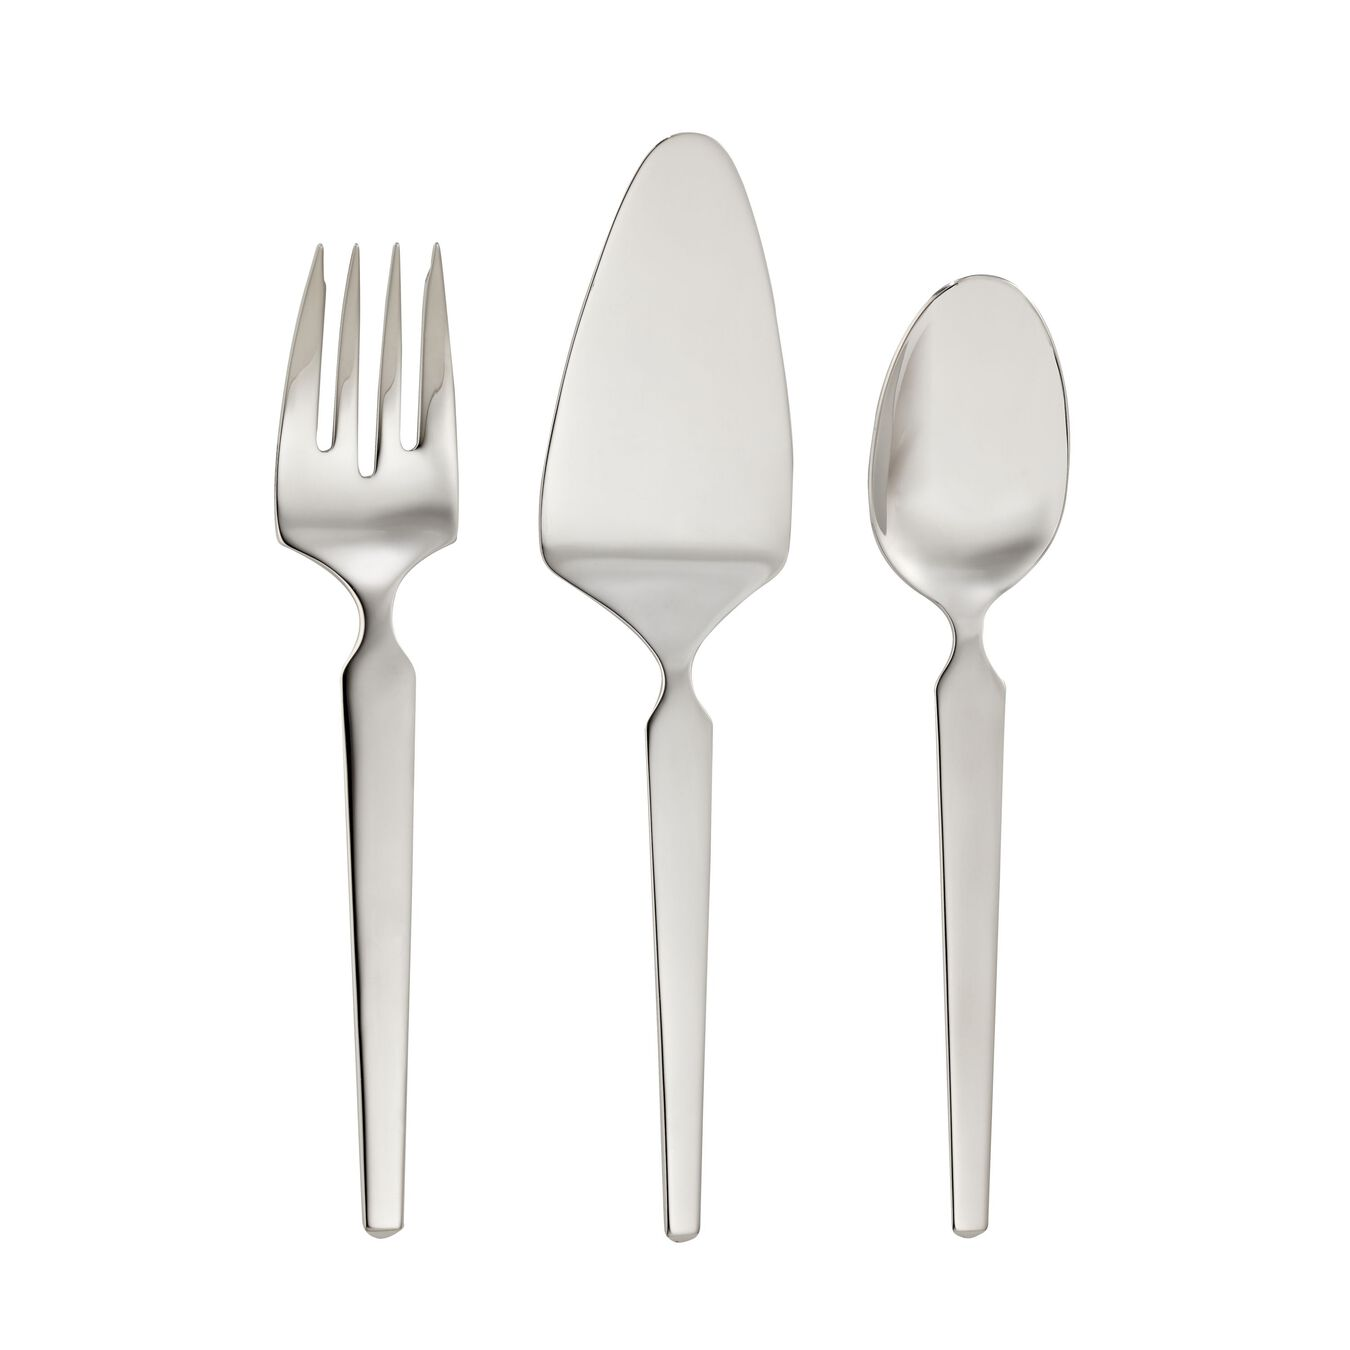 3-pc Flatware Serving Set,,large 1